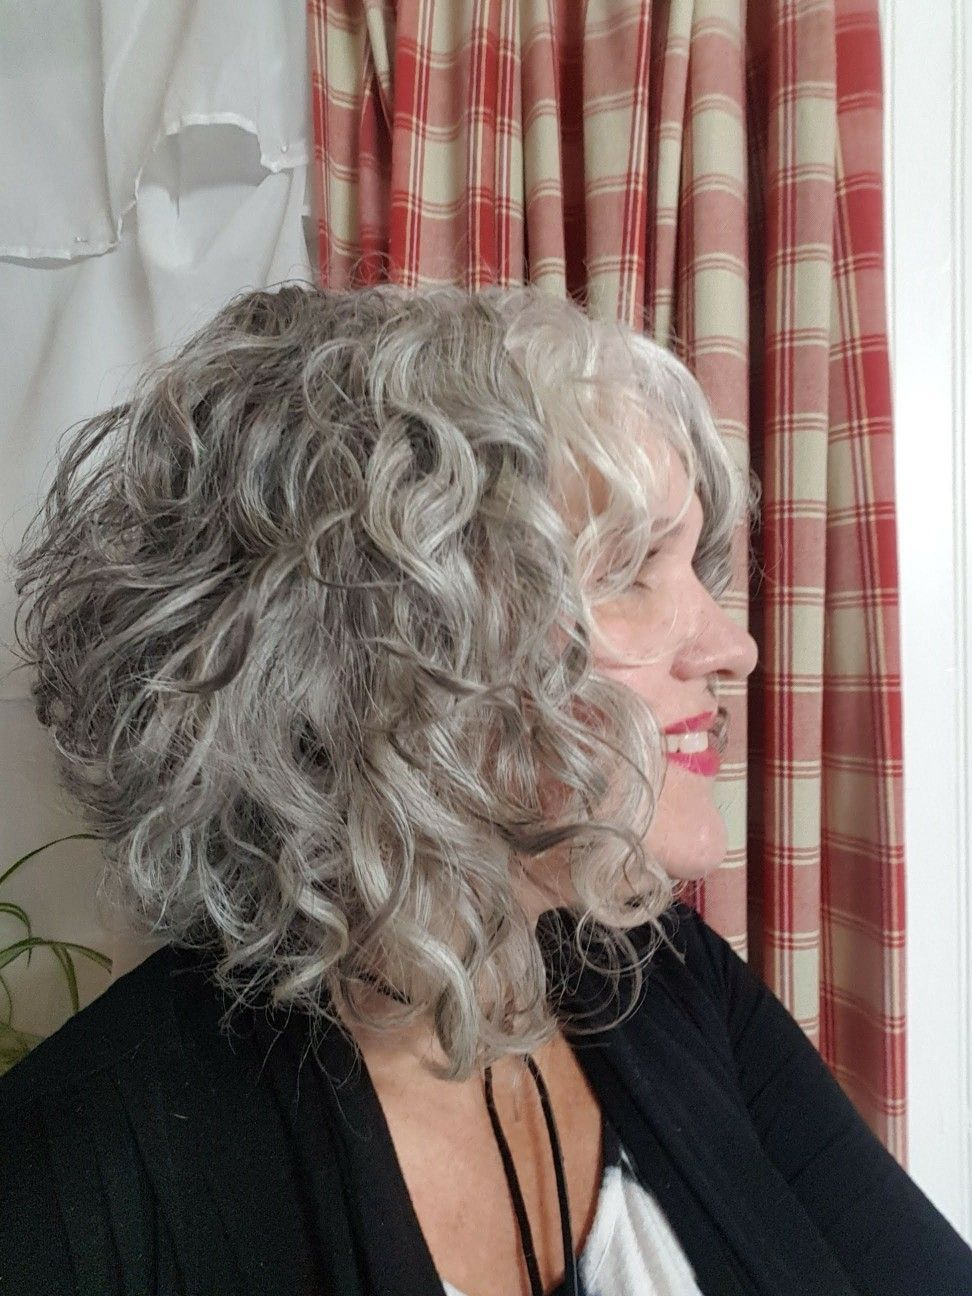 Let Your Natural Silver Lights Shine Grey Curly Hair Gray Hair Growing Out Curly Bob